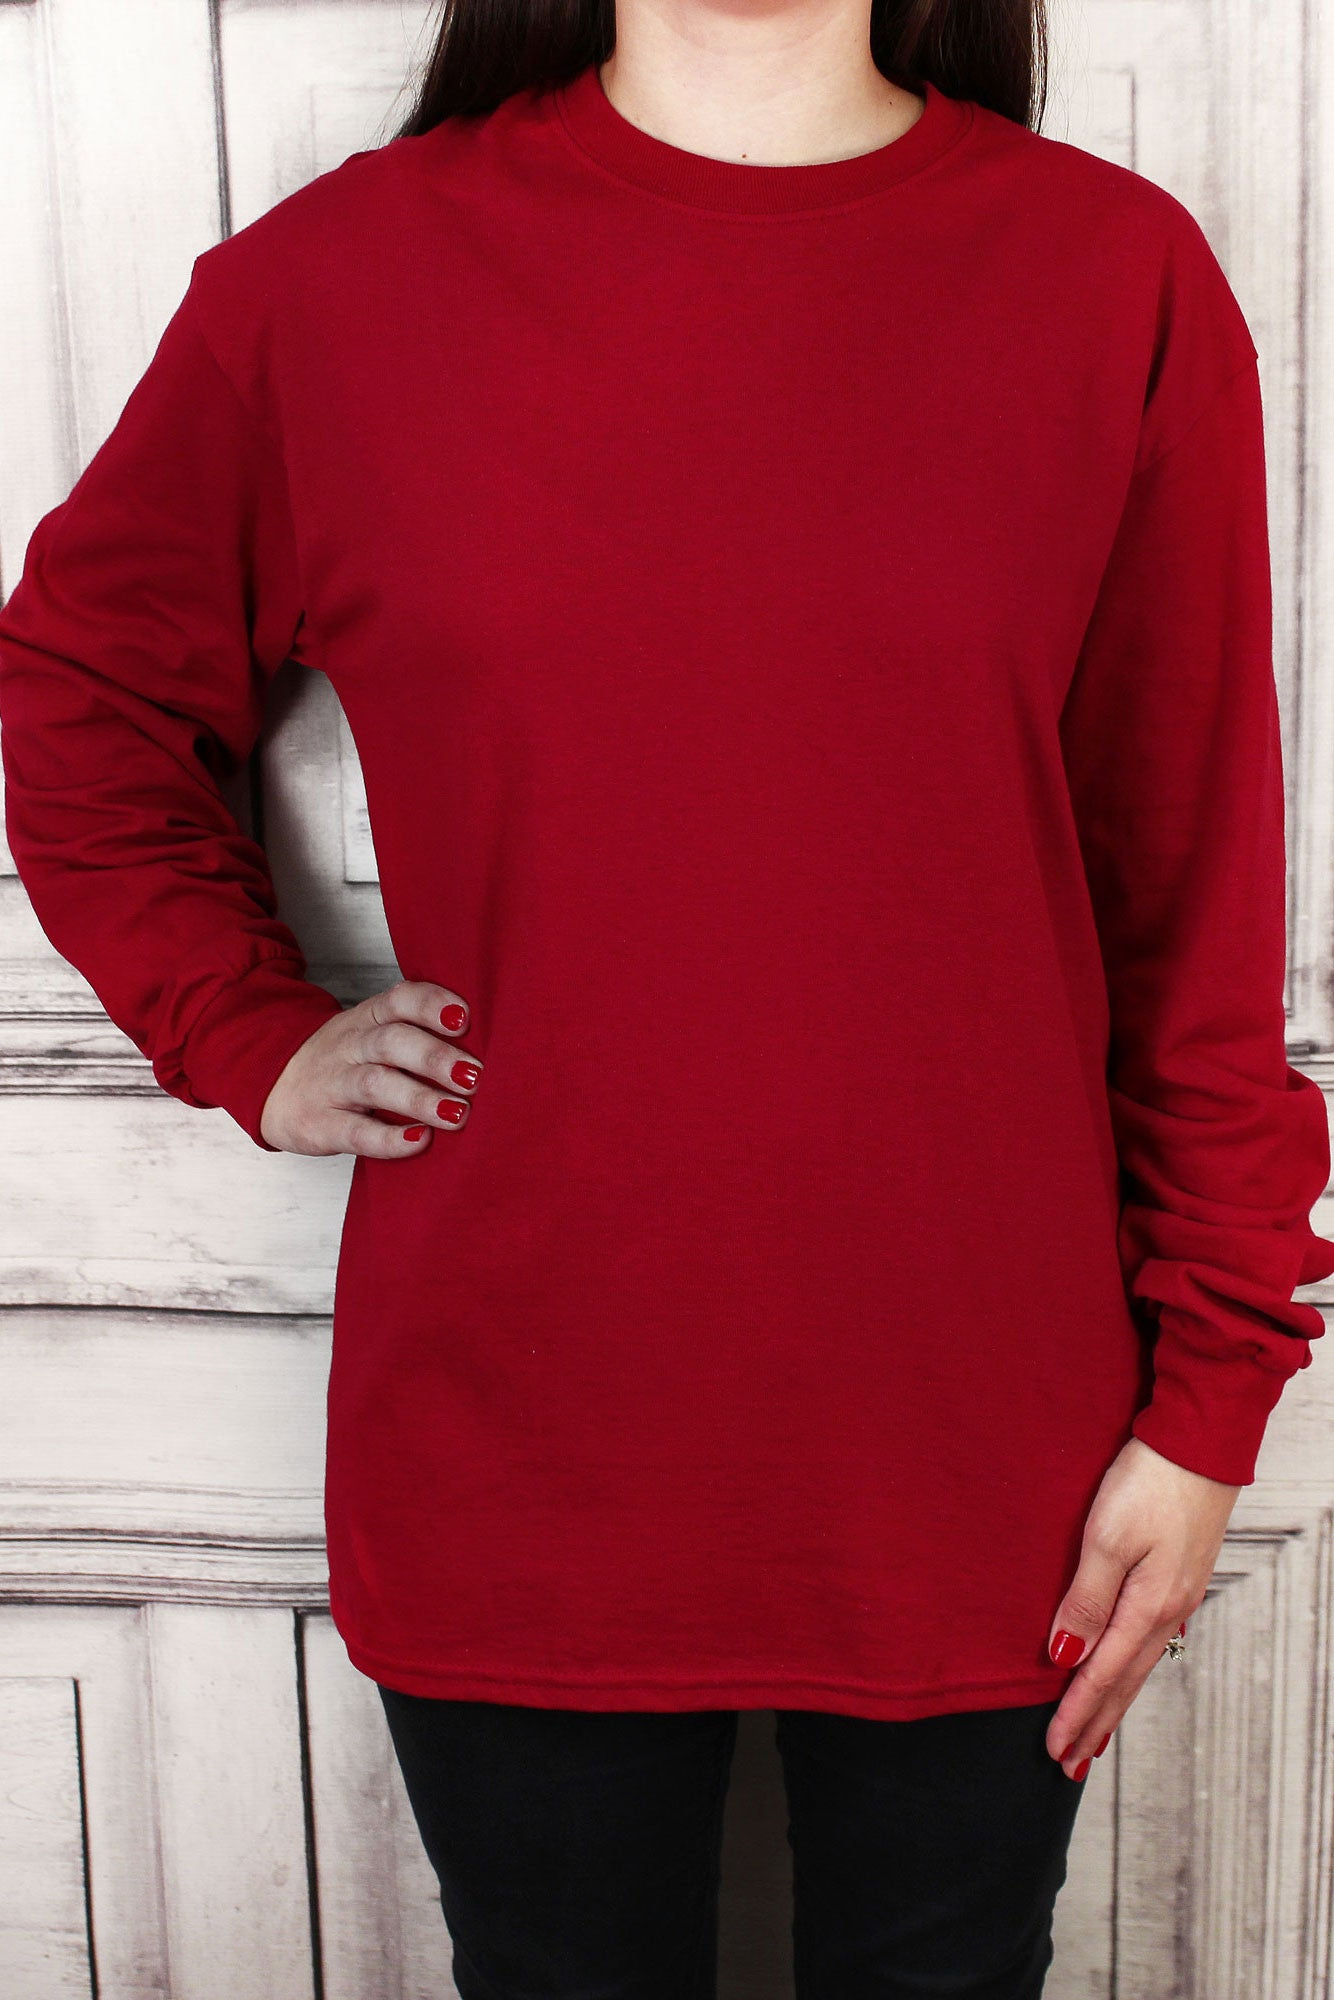 e89f49d2034 Shades of Red Ultra Cotton Adult Long Sleeve T-Shirt  2400  Personalize It